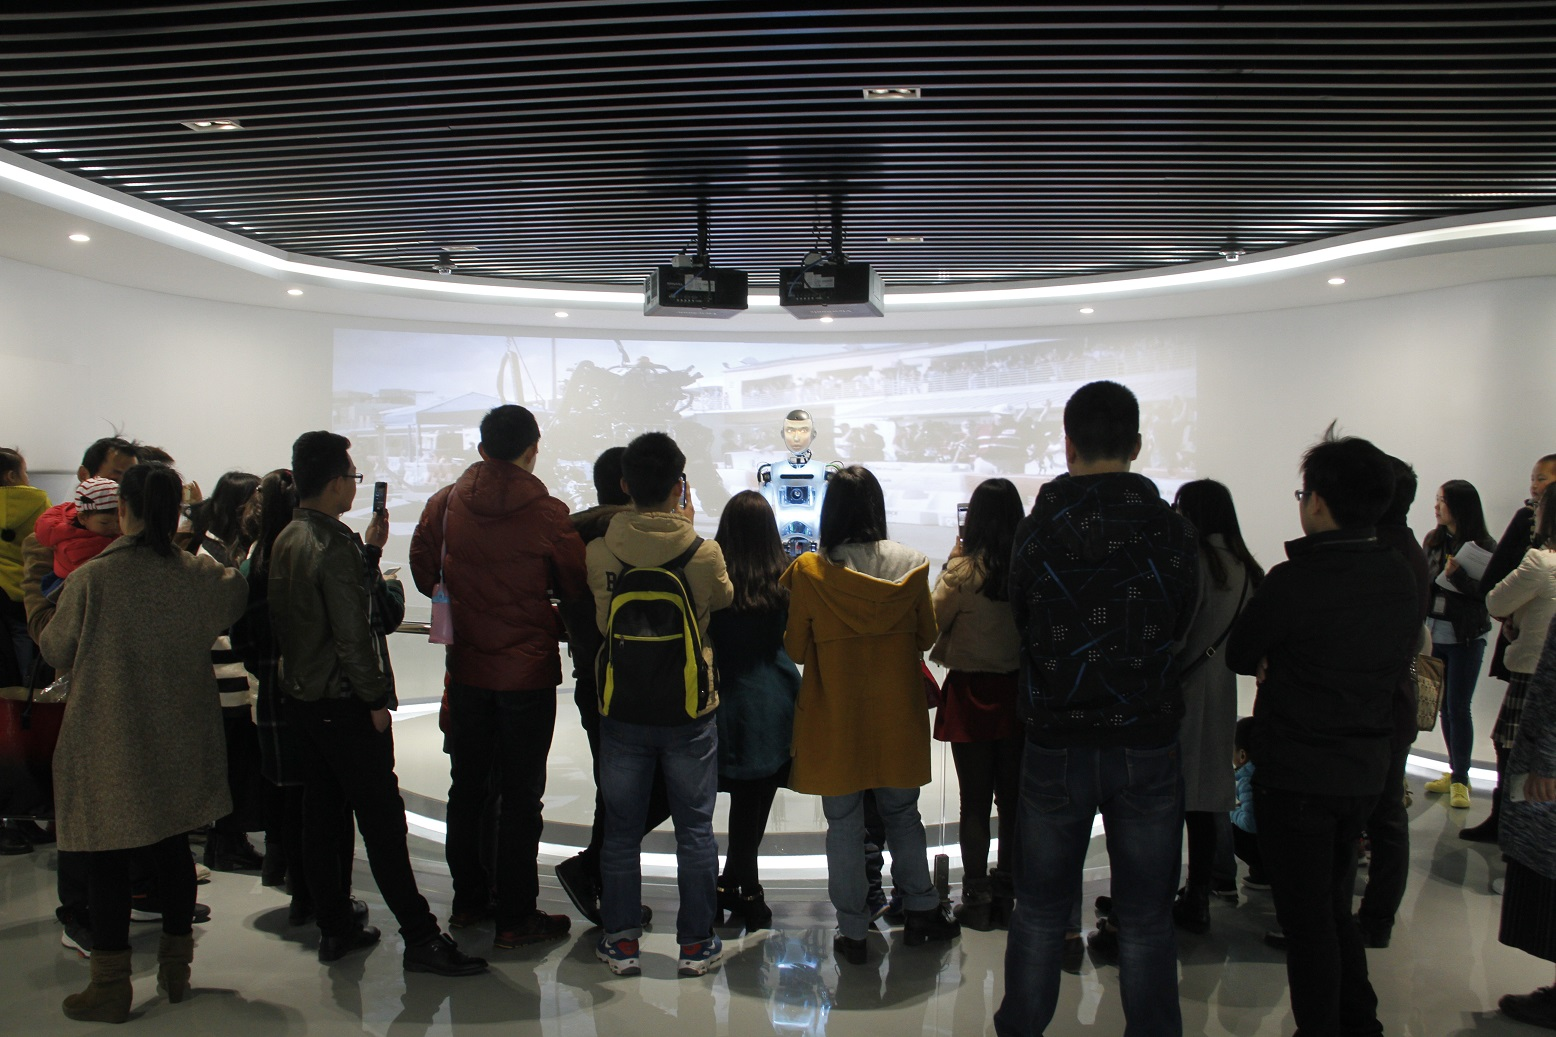 Humanoid RoboThespian Entertaining Crowds at Robot Museum, Suzhou. Engineered Arts